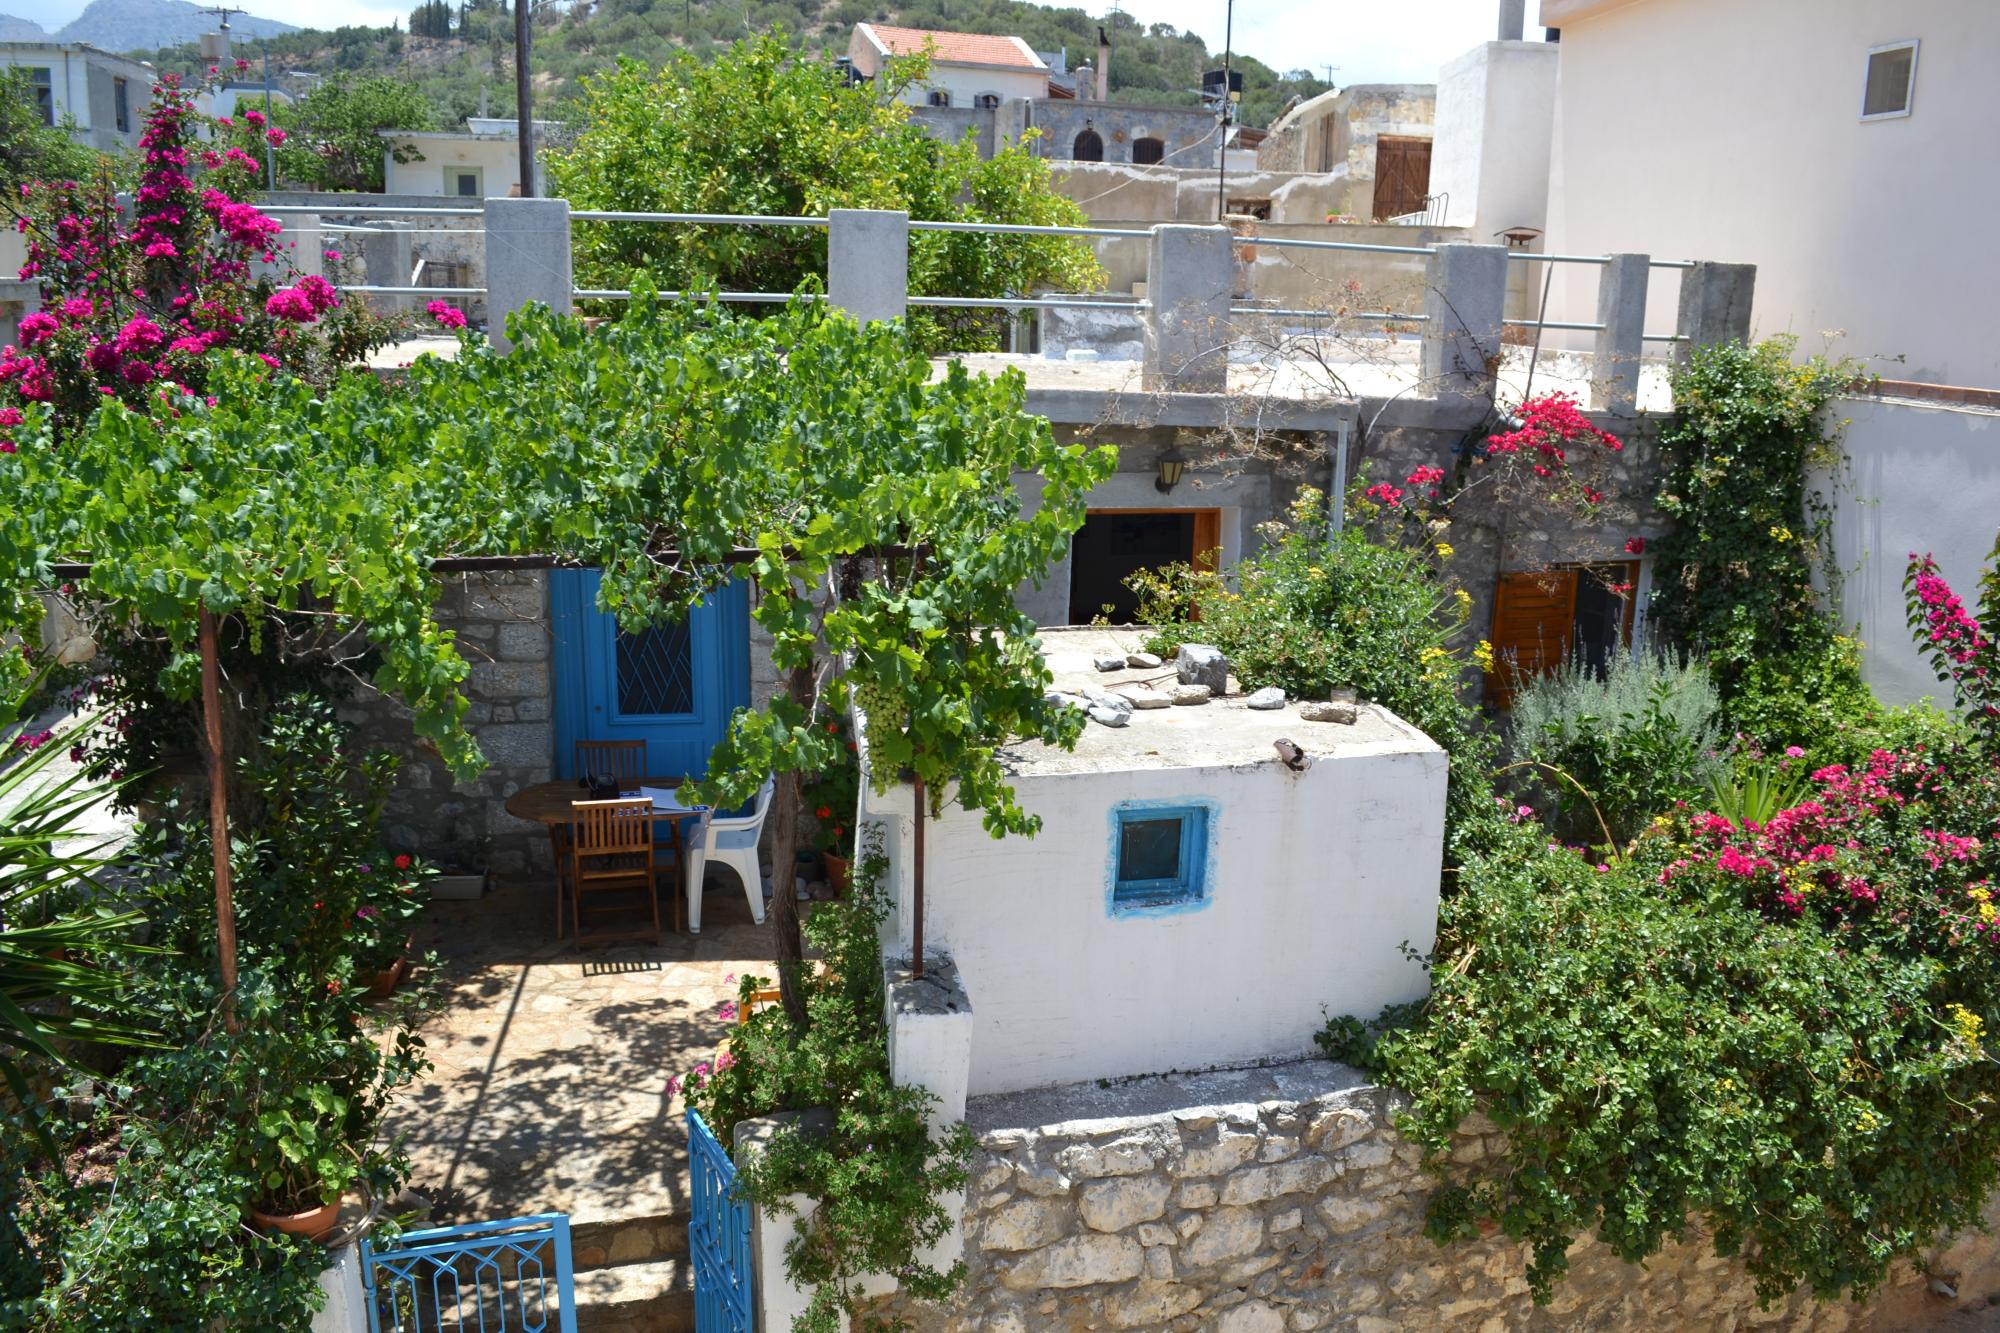 One bedroom bungalow with garden, near the sea.